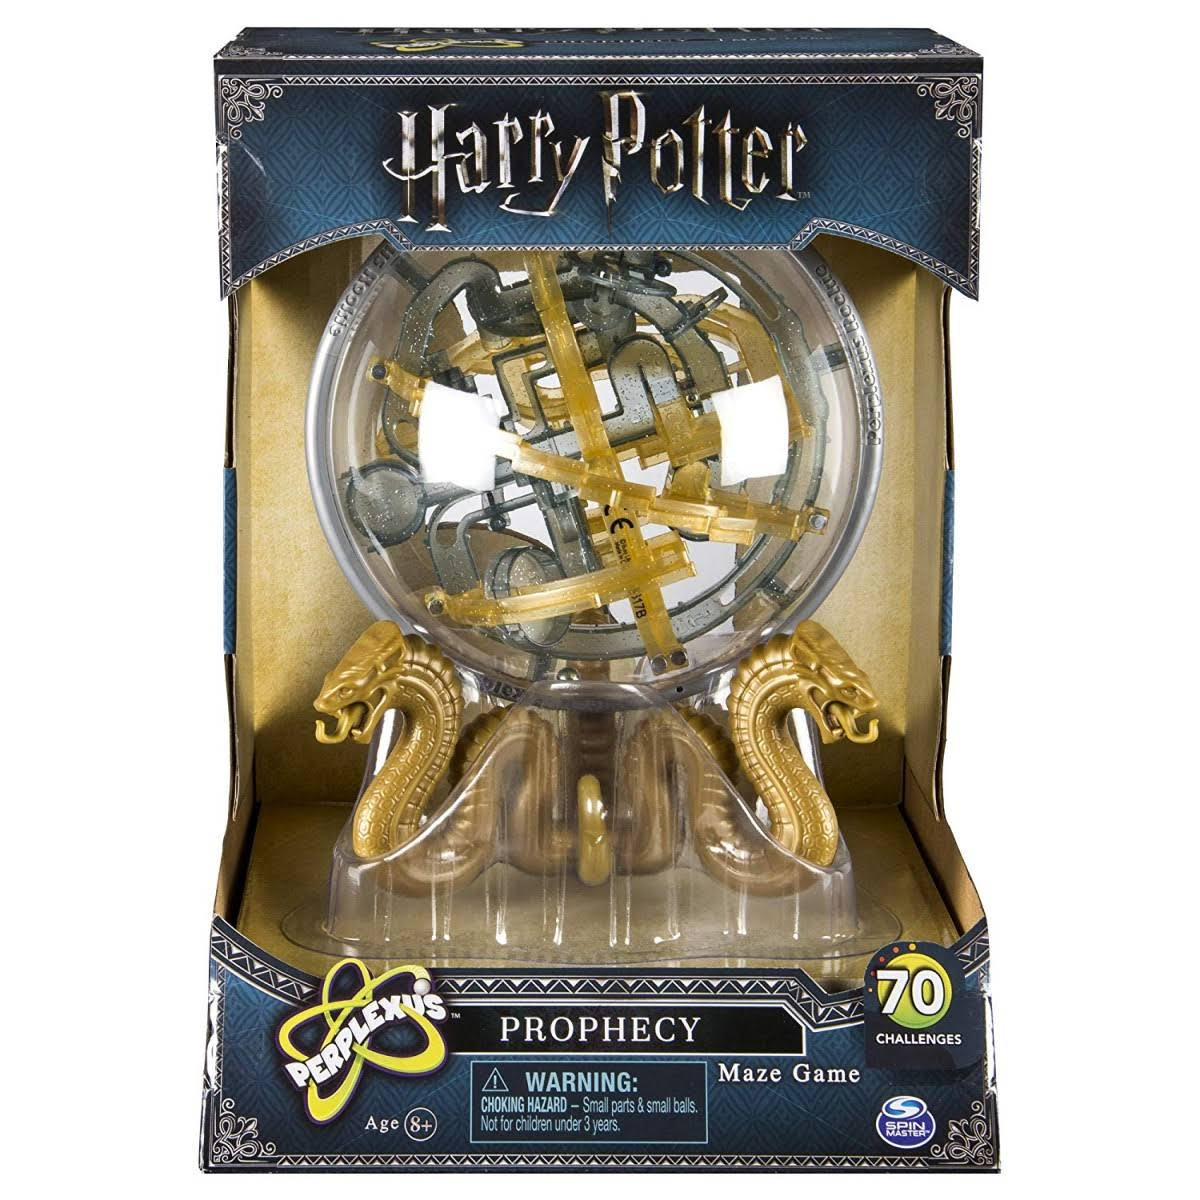 Harry Potter Perplexus Game